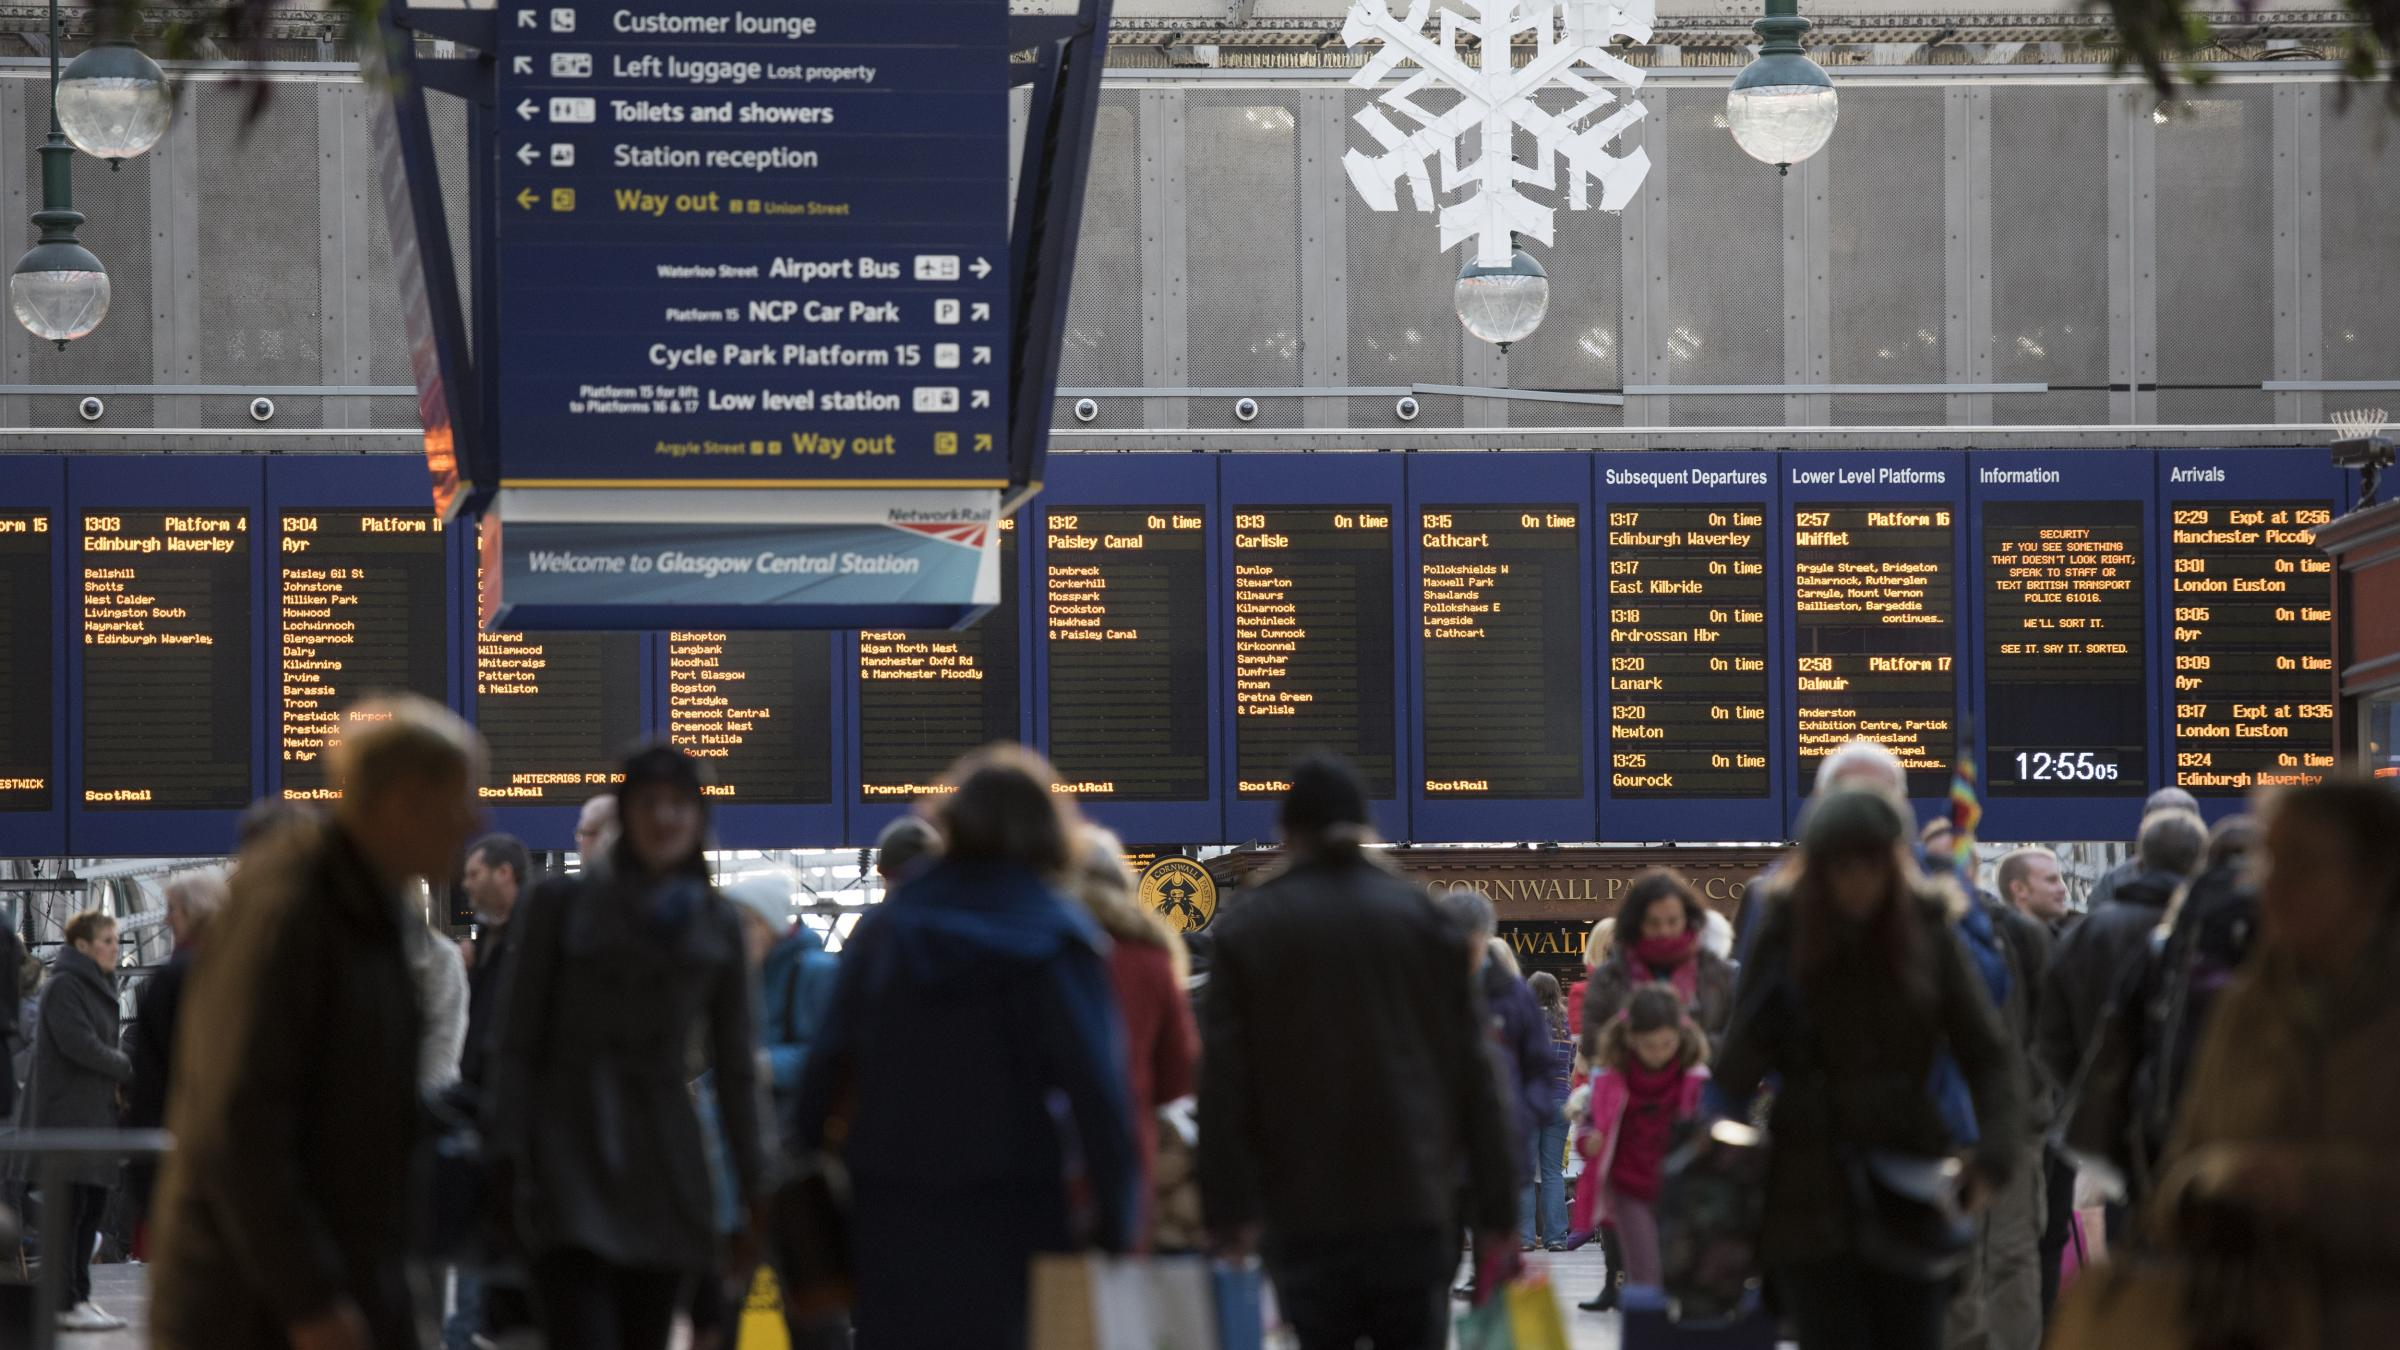 ScotRail issue apology for 'unacceptable' service amid cancellations